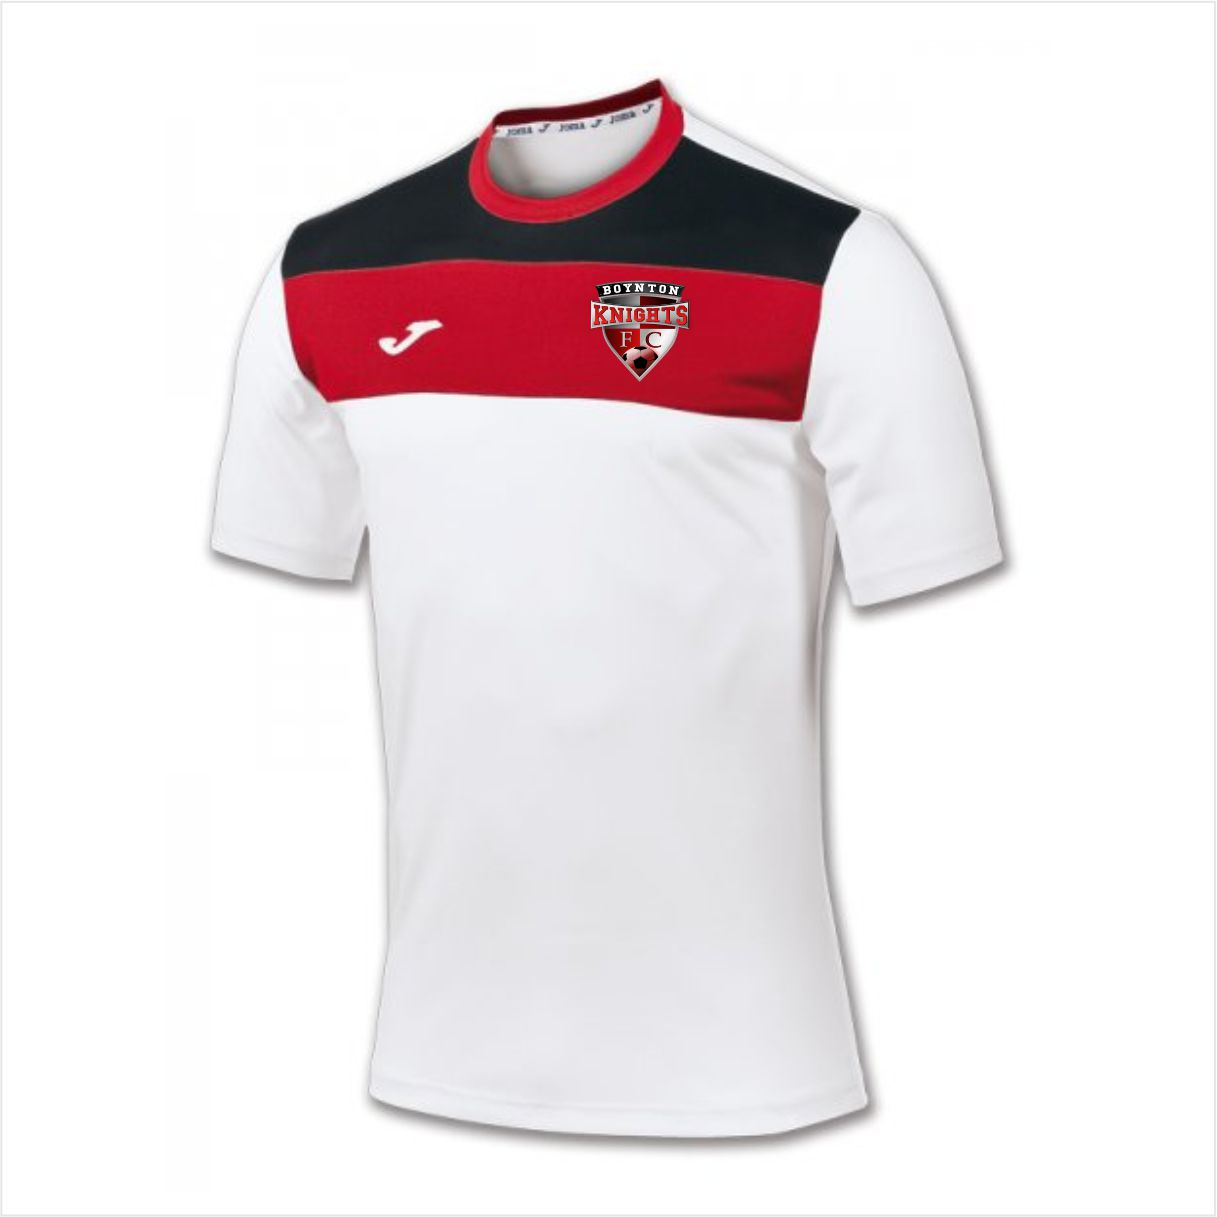 Boynton Knights Joma Crew Jersey - White/Red/Black StandWH15